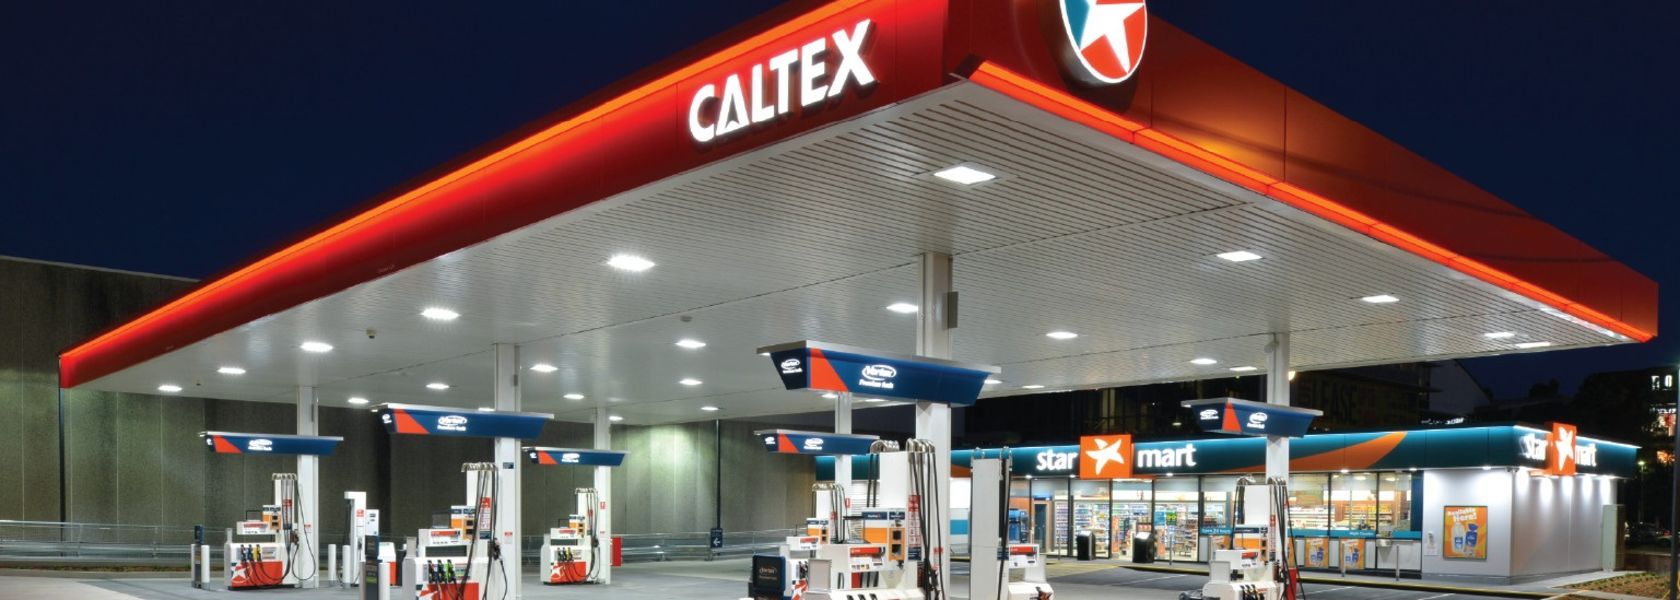 Caltex to offload stake in 250 petrol stations